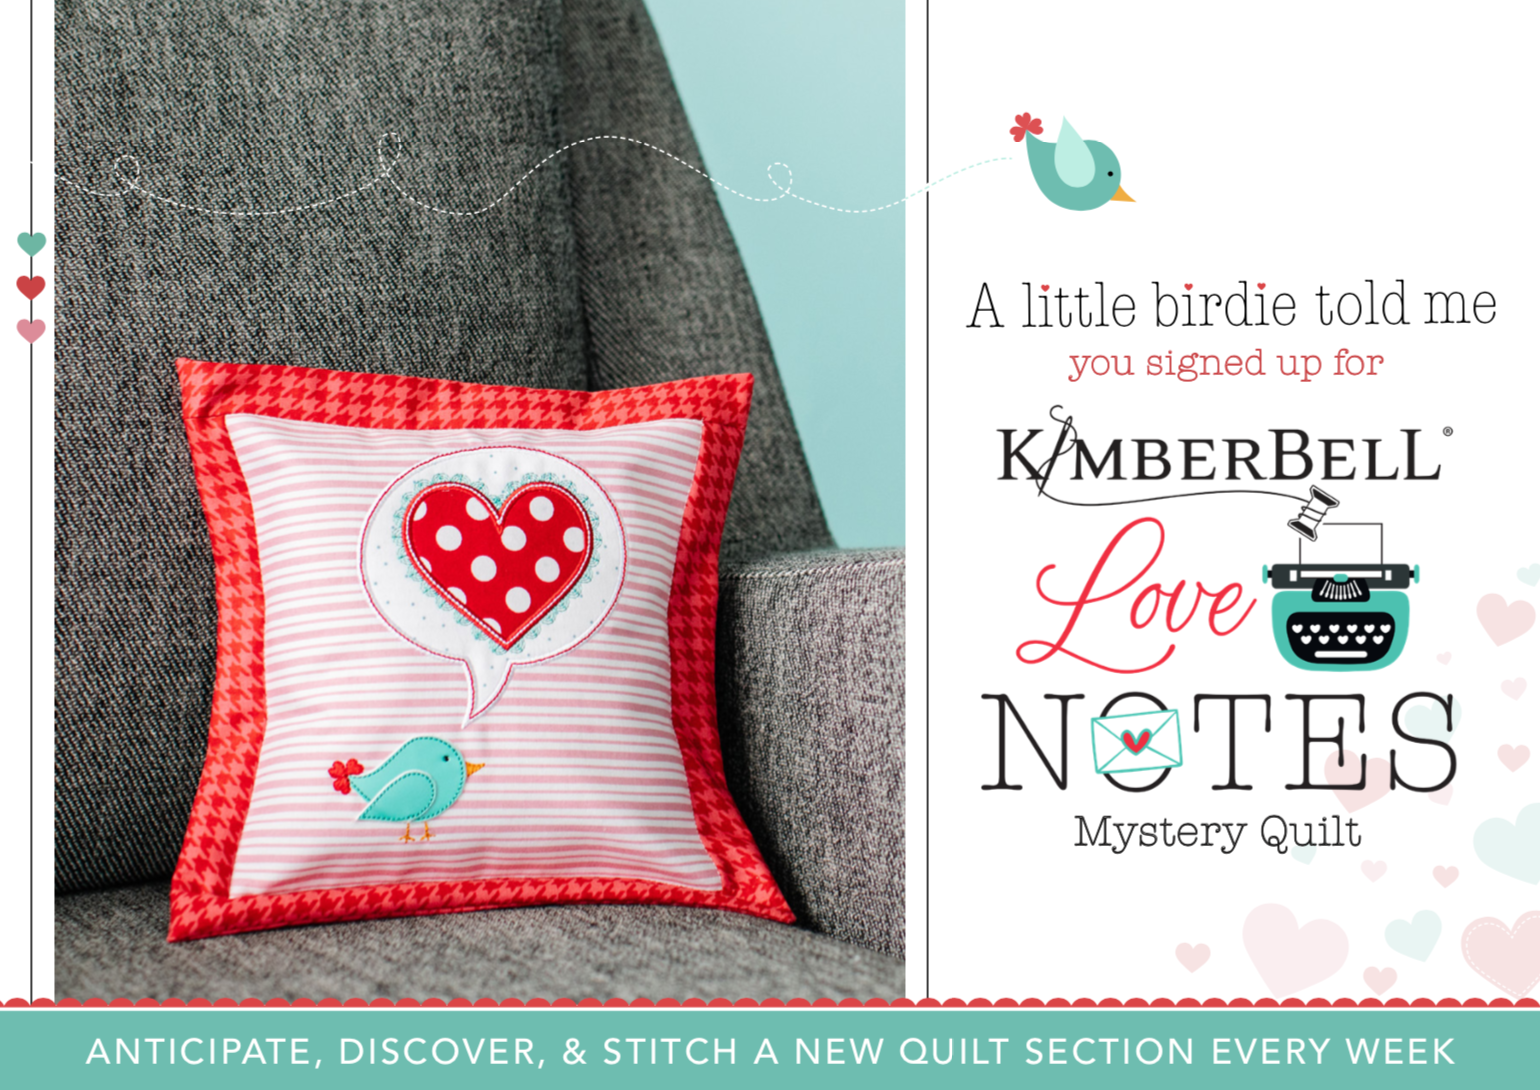 Kimberbell Mystery Quilt - Love Notes